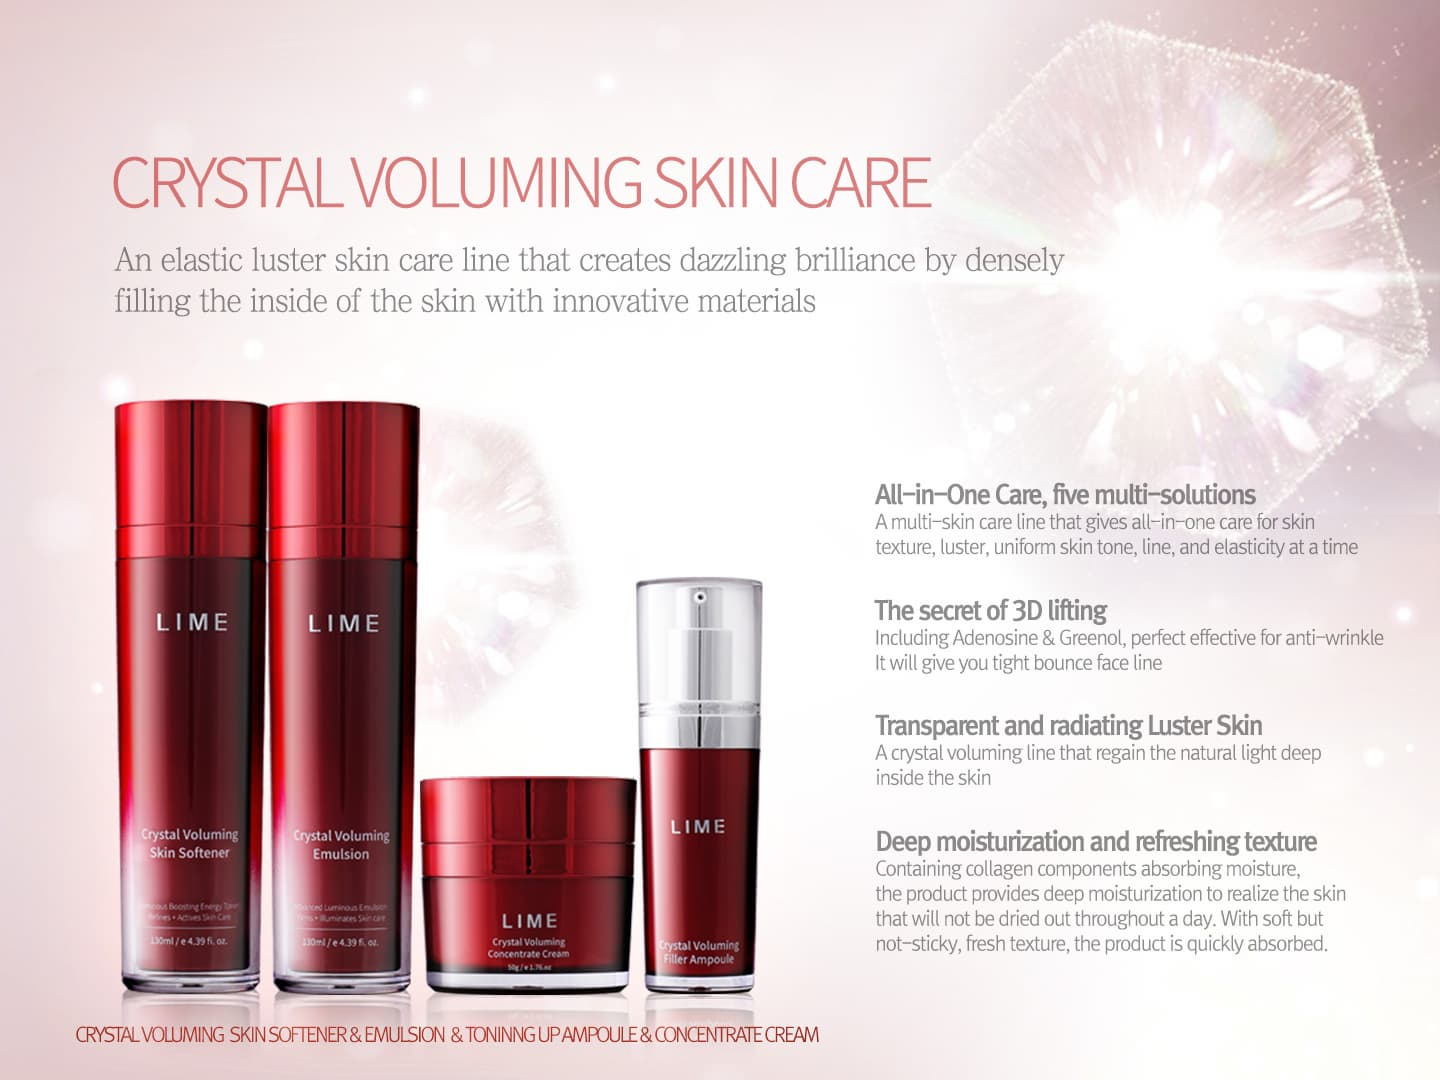 _LIME_ CRYSTAL VOLUMING SKIN CARE SET